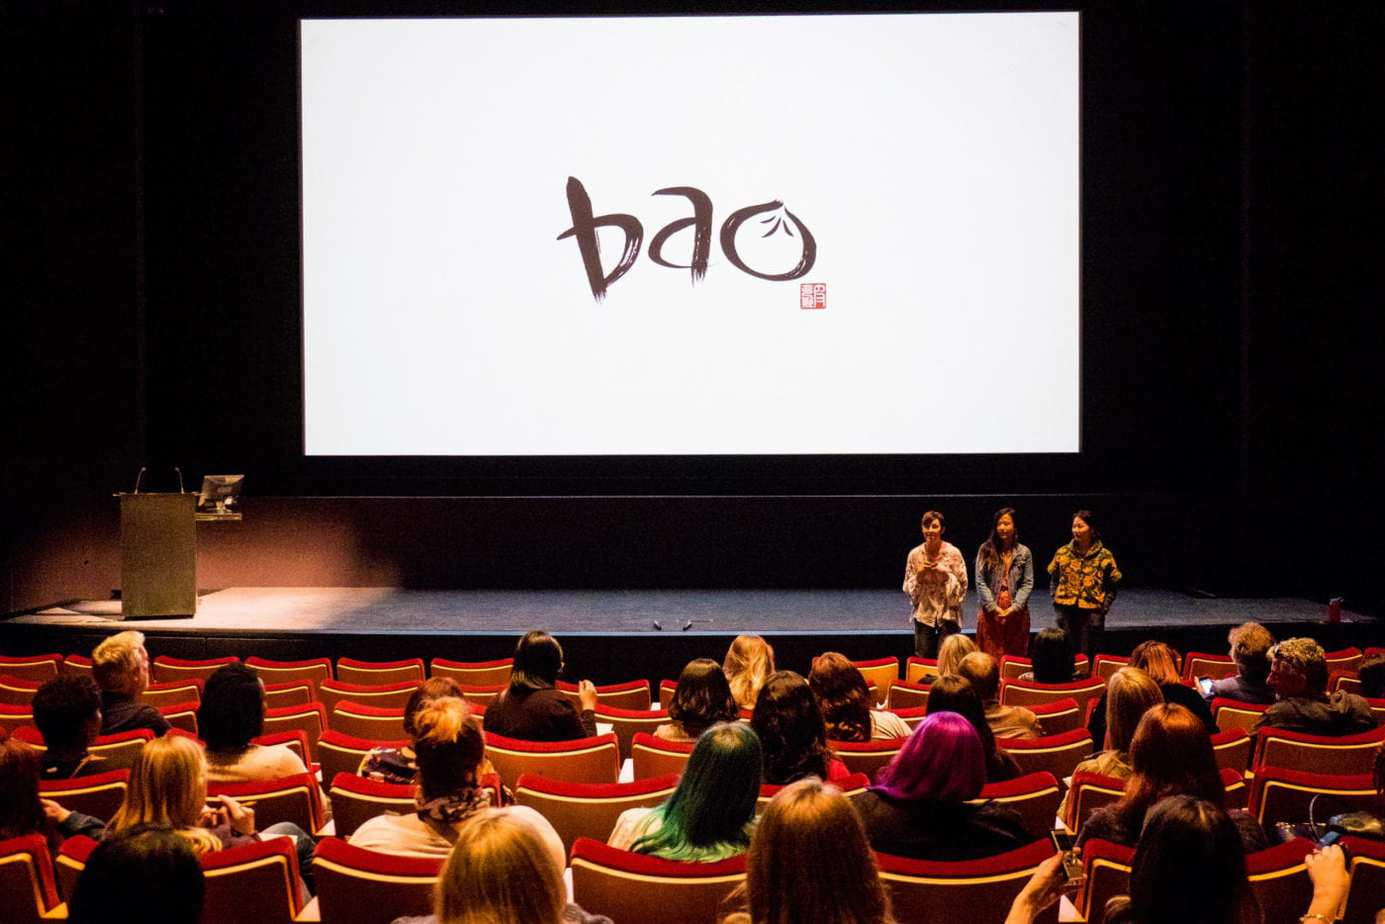 BAO filmmakers: Domee Shi (Director), Becky Neiman (Producer) and Rona Liu (Production Designer) at Incredibles 2 Long Lead Press day